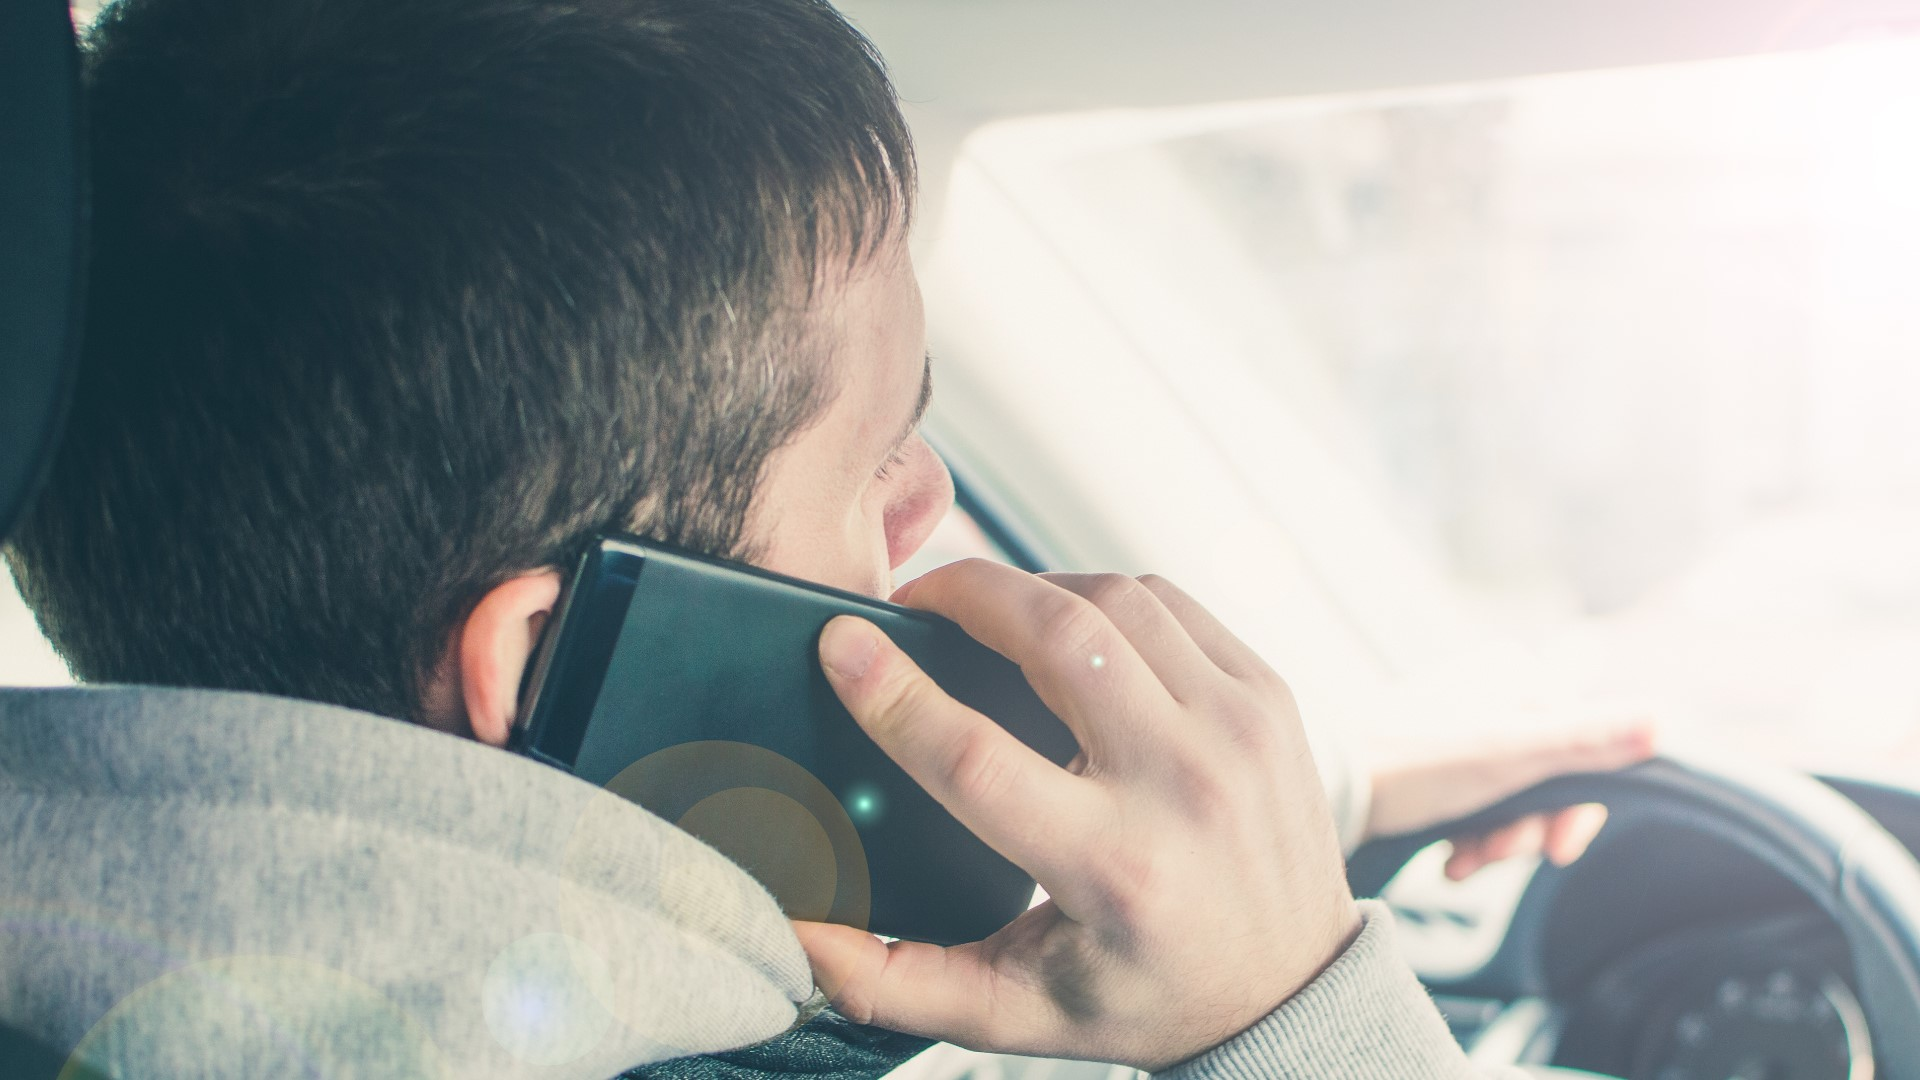 After July 1 Using Your Phone And Driving Is Illegal Aaa Says That Doesn T Mean Roads Are Safer Wthr Com